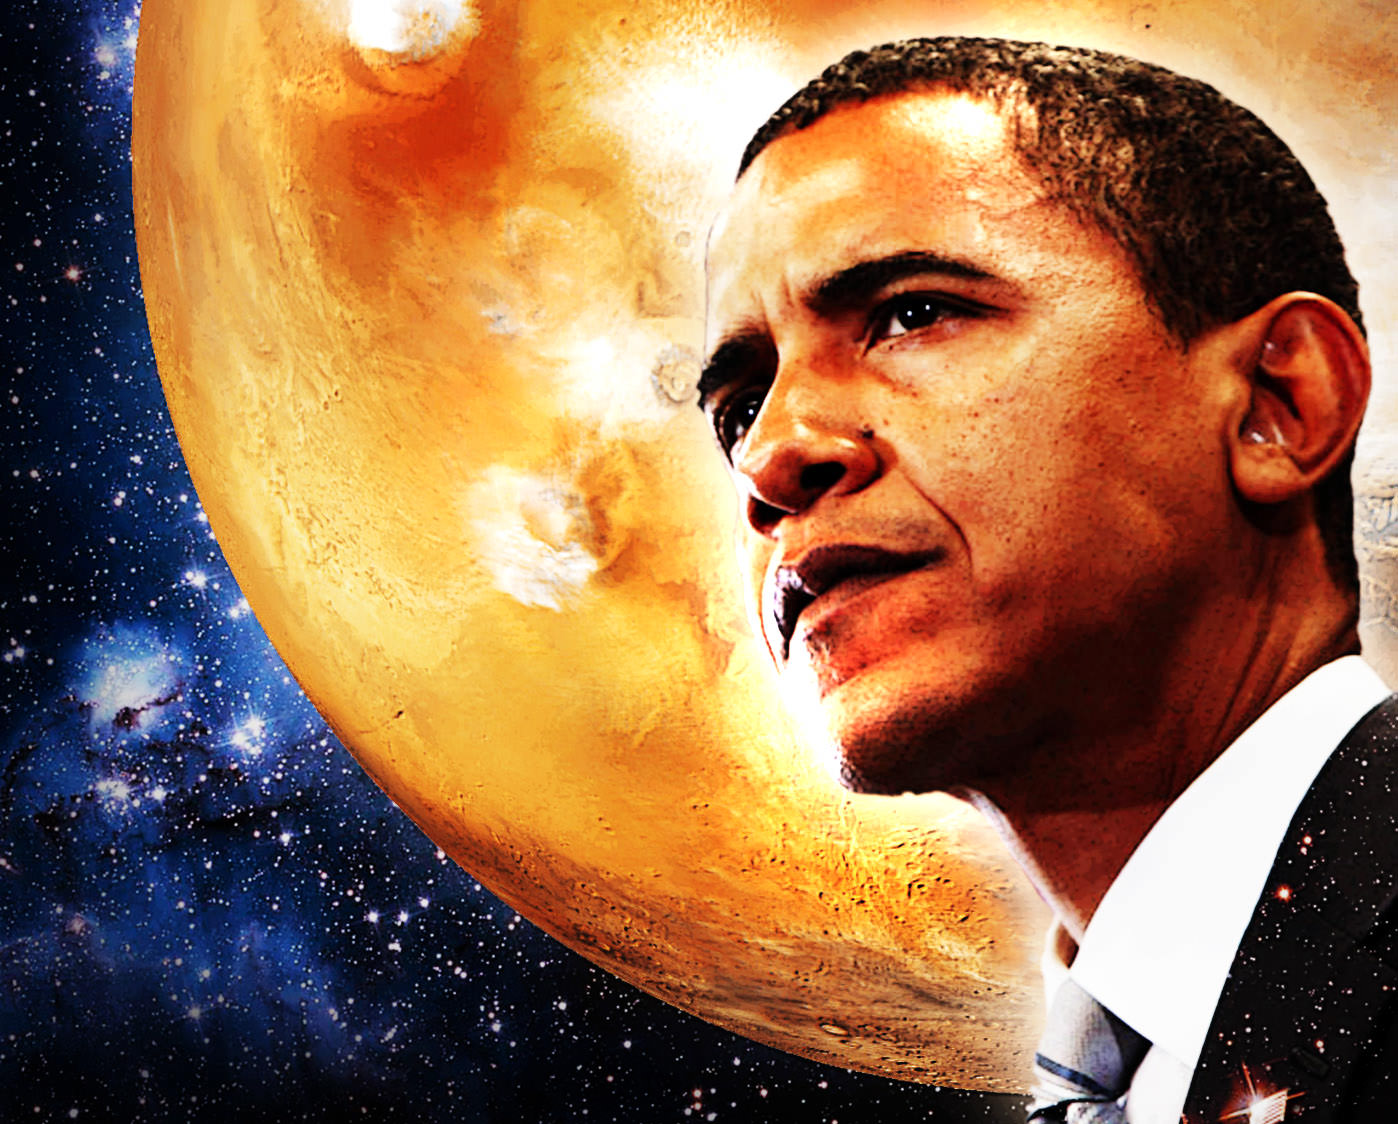 Was the 44th President of the United States a time-traveling teenage Mars explorer?